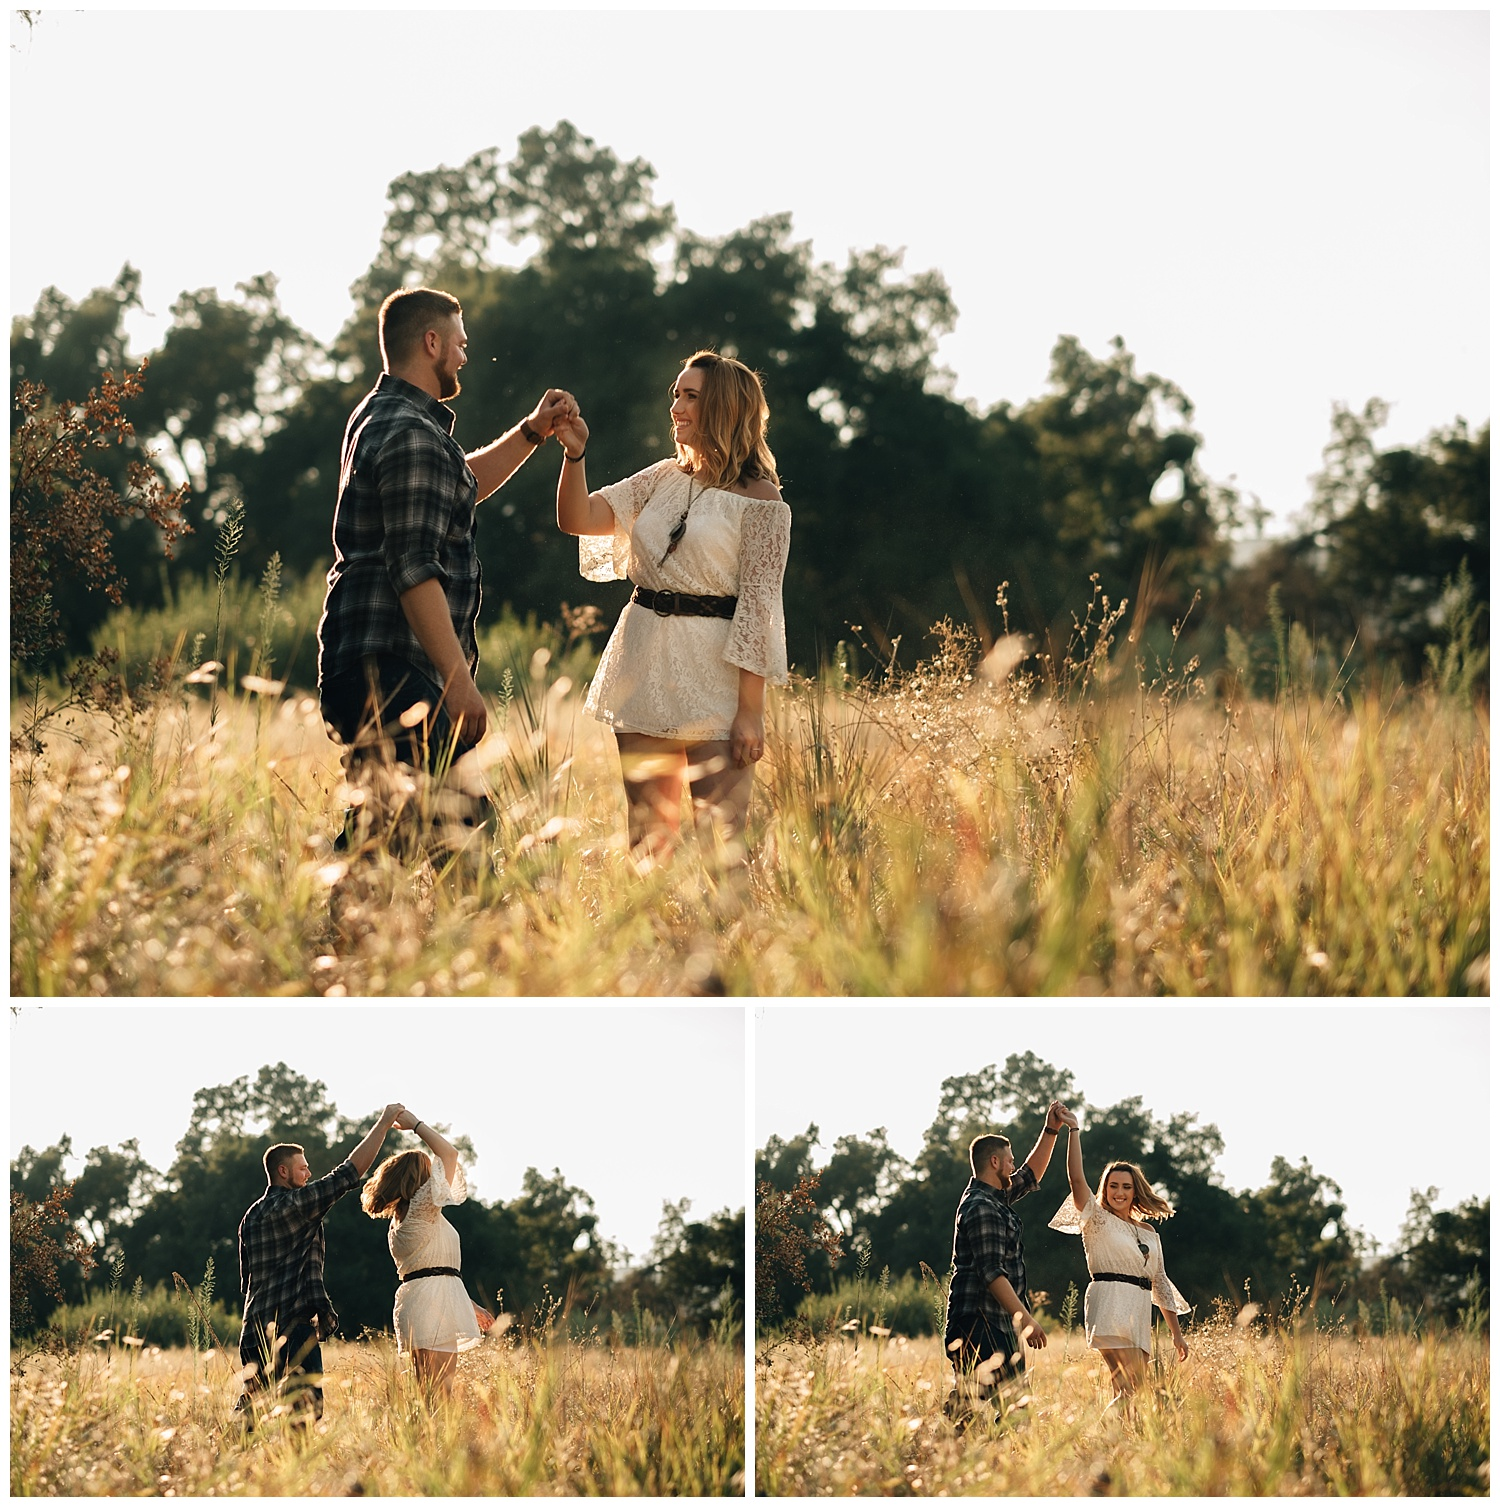 California_Country_Engagement_Session_41.jpg